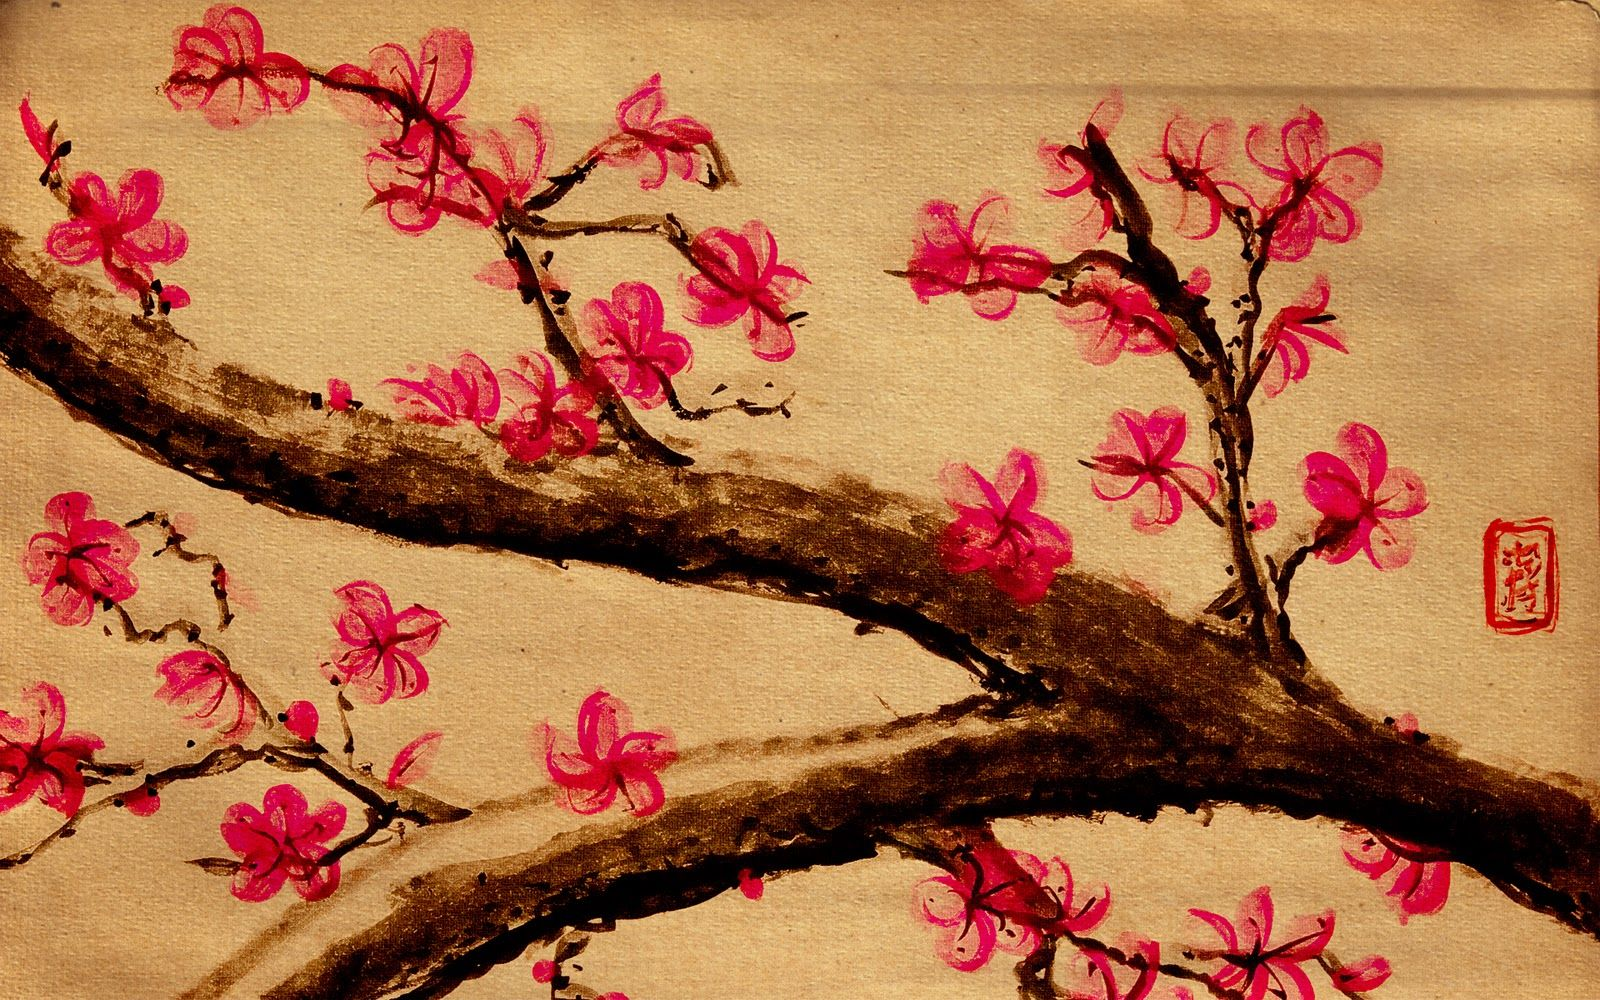 Cherry Blossom Cherry Blossom Painting Blossoms Art Cherry Blossom Pictures